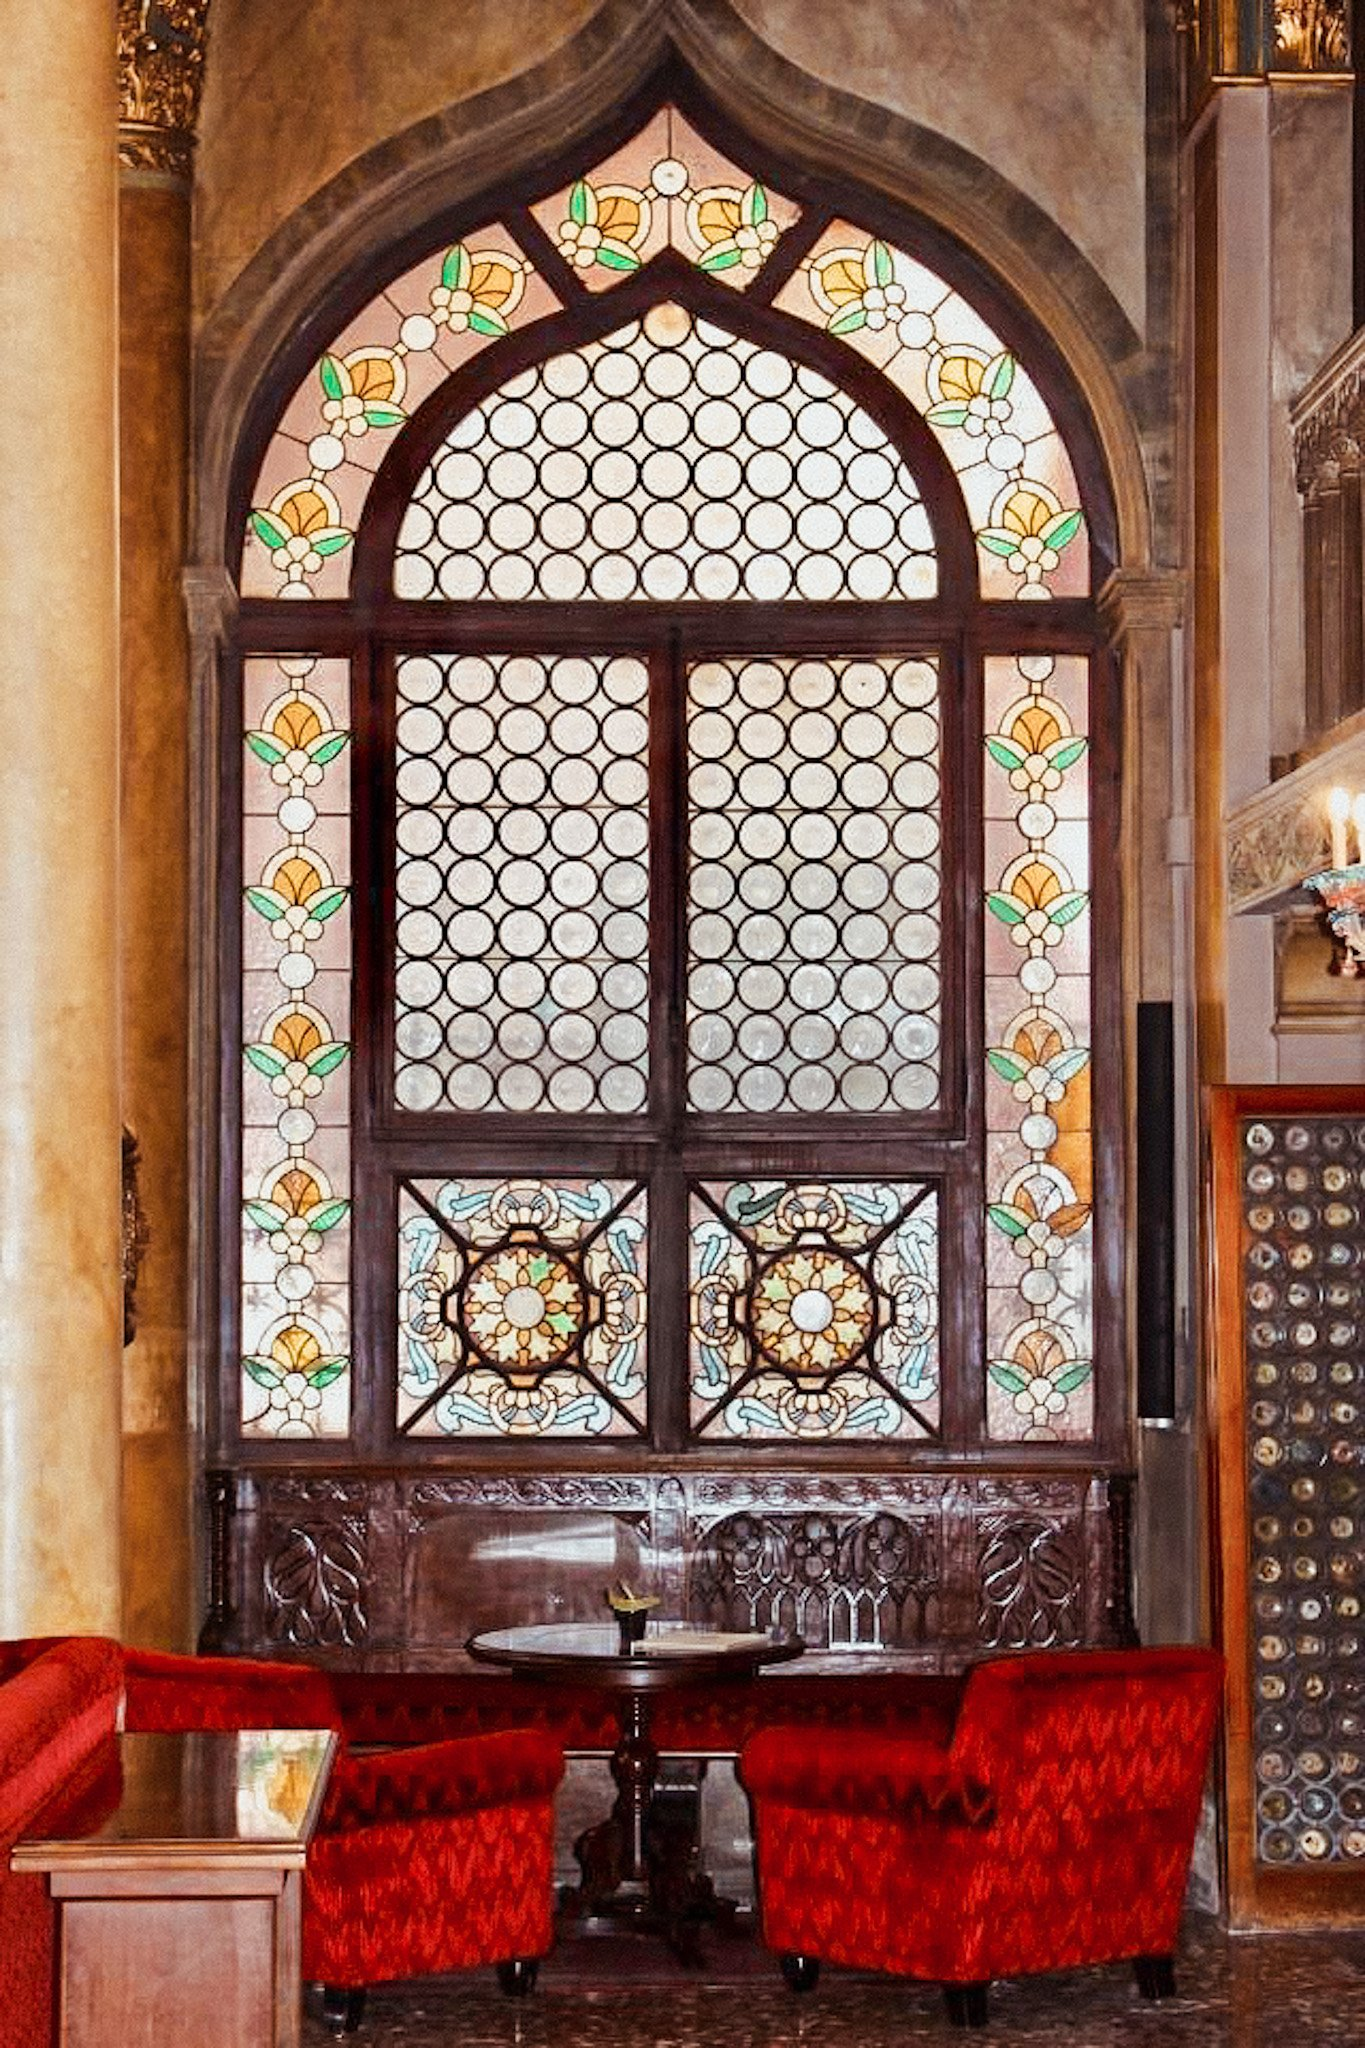 Stained glass window at Hotel Danieli in Venice, Italy